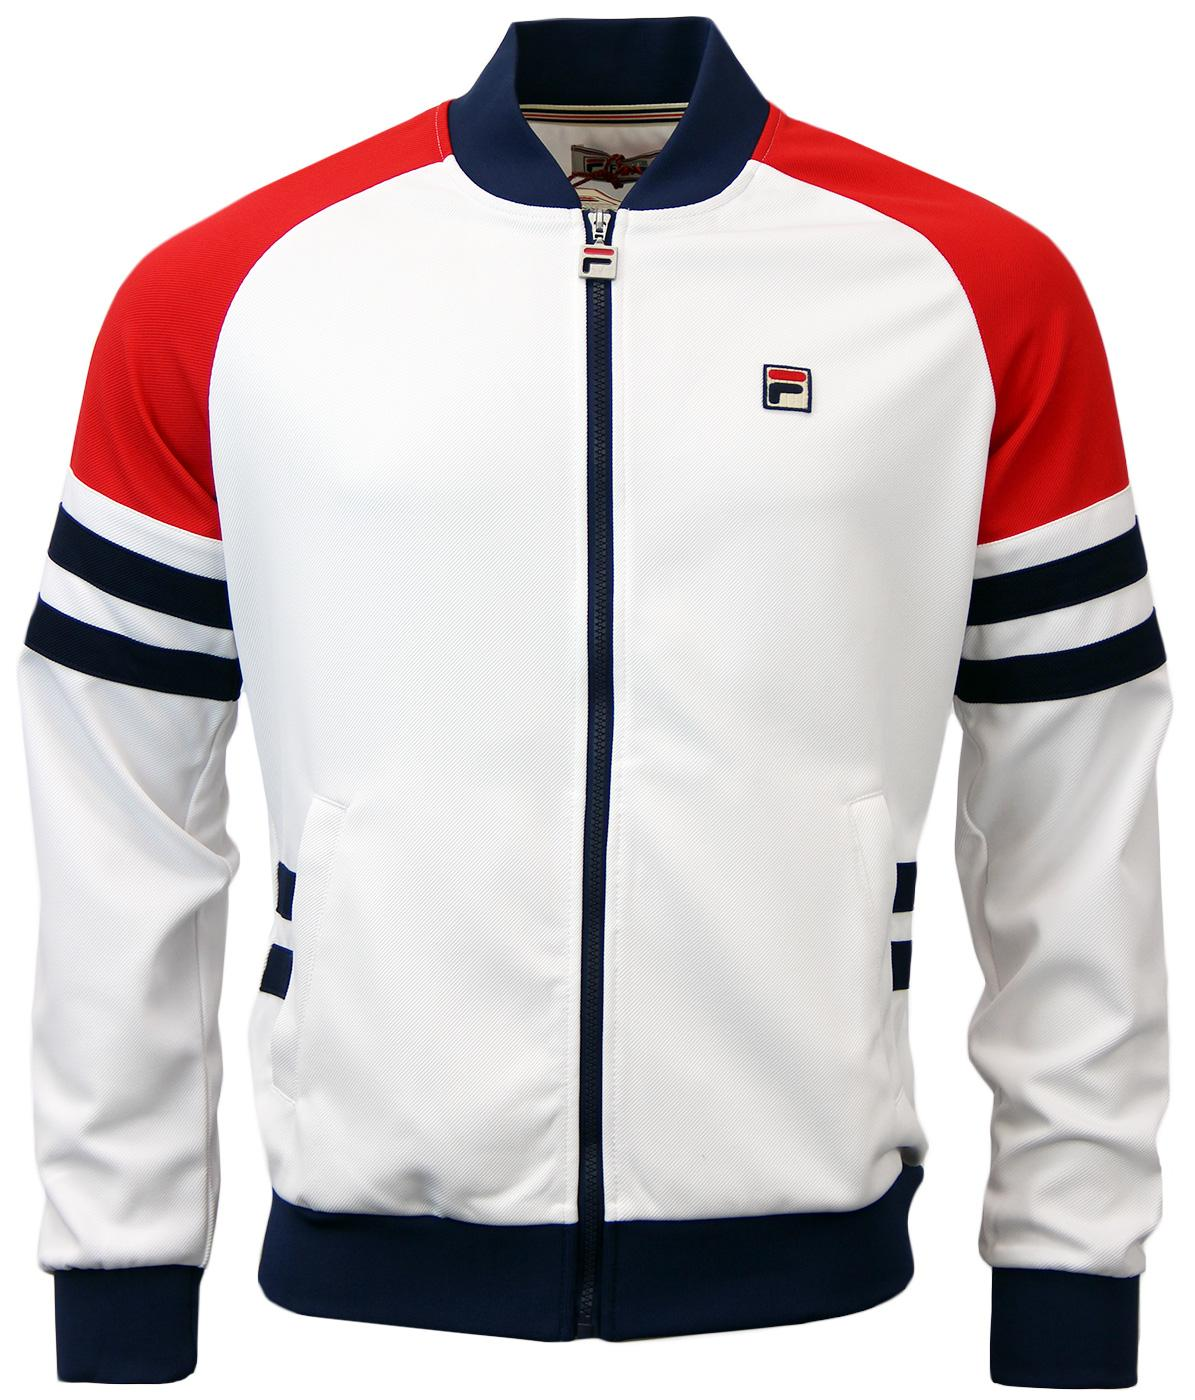 Founder FILA VINTAGE Retro Seventies Track Jacket